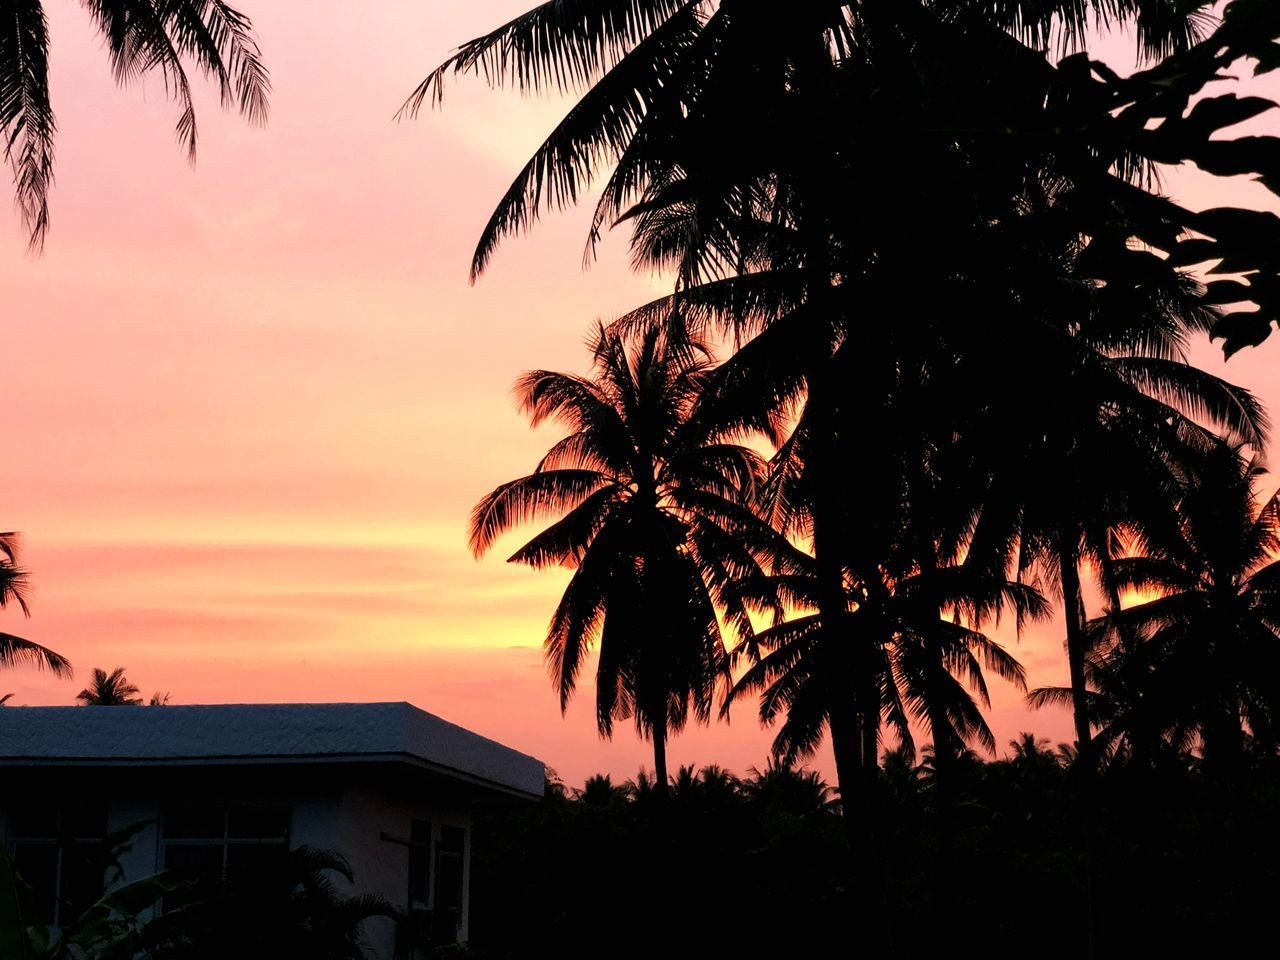 SILHOUETTE OF PALM TREES AGAINST SKY DURING SUNSET